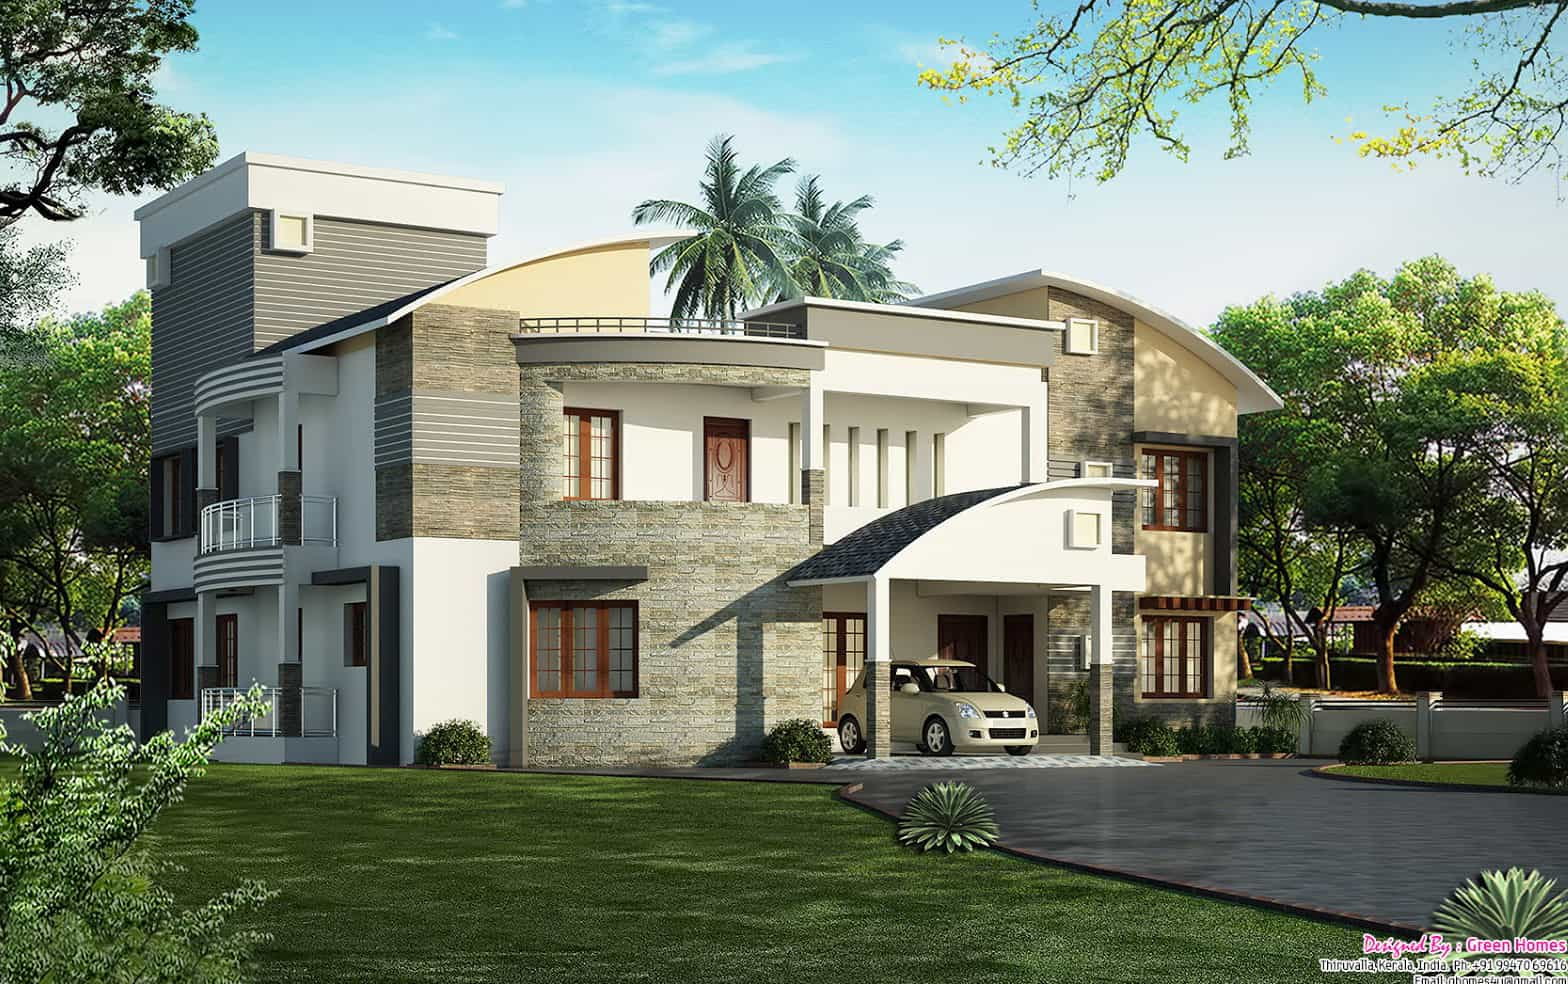 Unique house designs keralahouseplanner Unique house designs